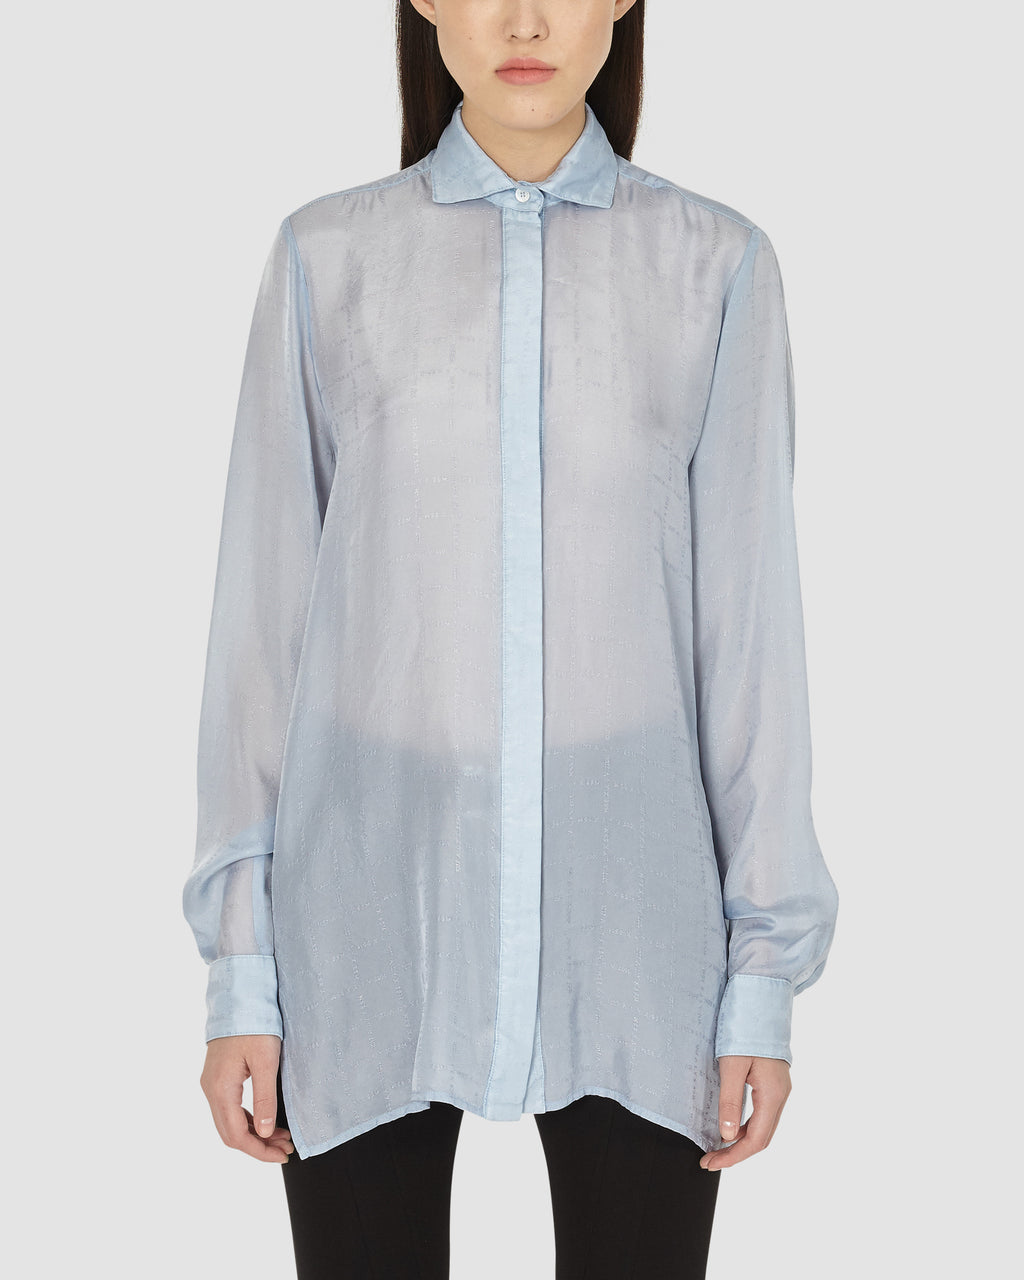 1017 ALYX 9SM | HAVE A GOOD SUMMER SHIRT | Shirt | Google Shopping, LIGHT BLUE, S20, S20EXSH, Shirts, TOPS & SHIRTS, Woman, WOMEN